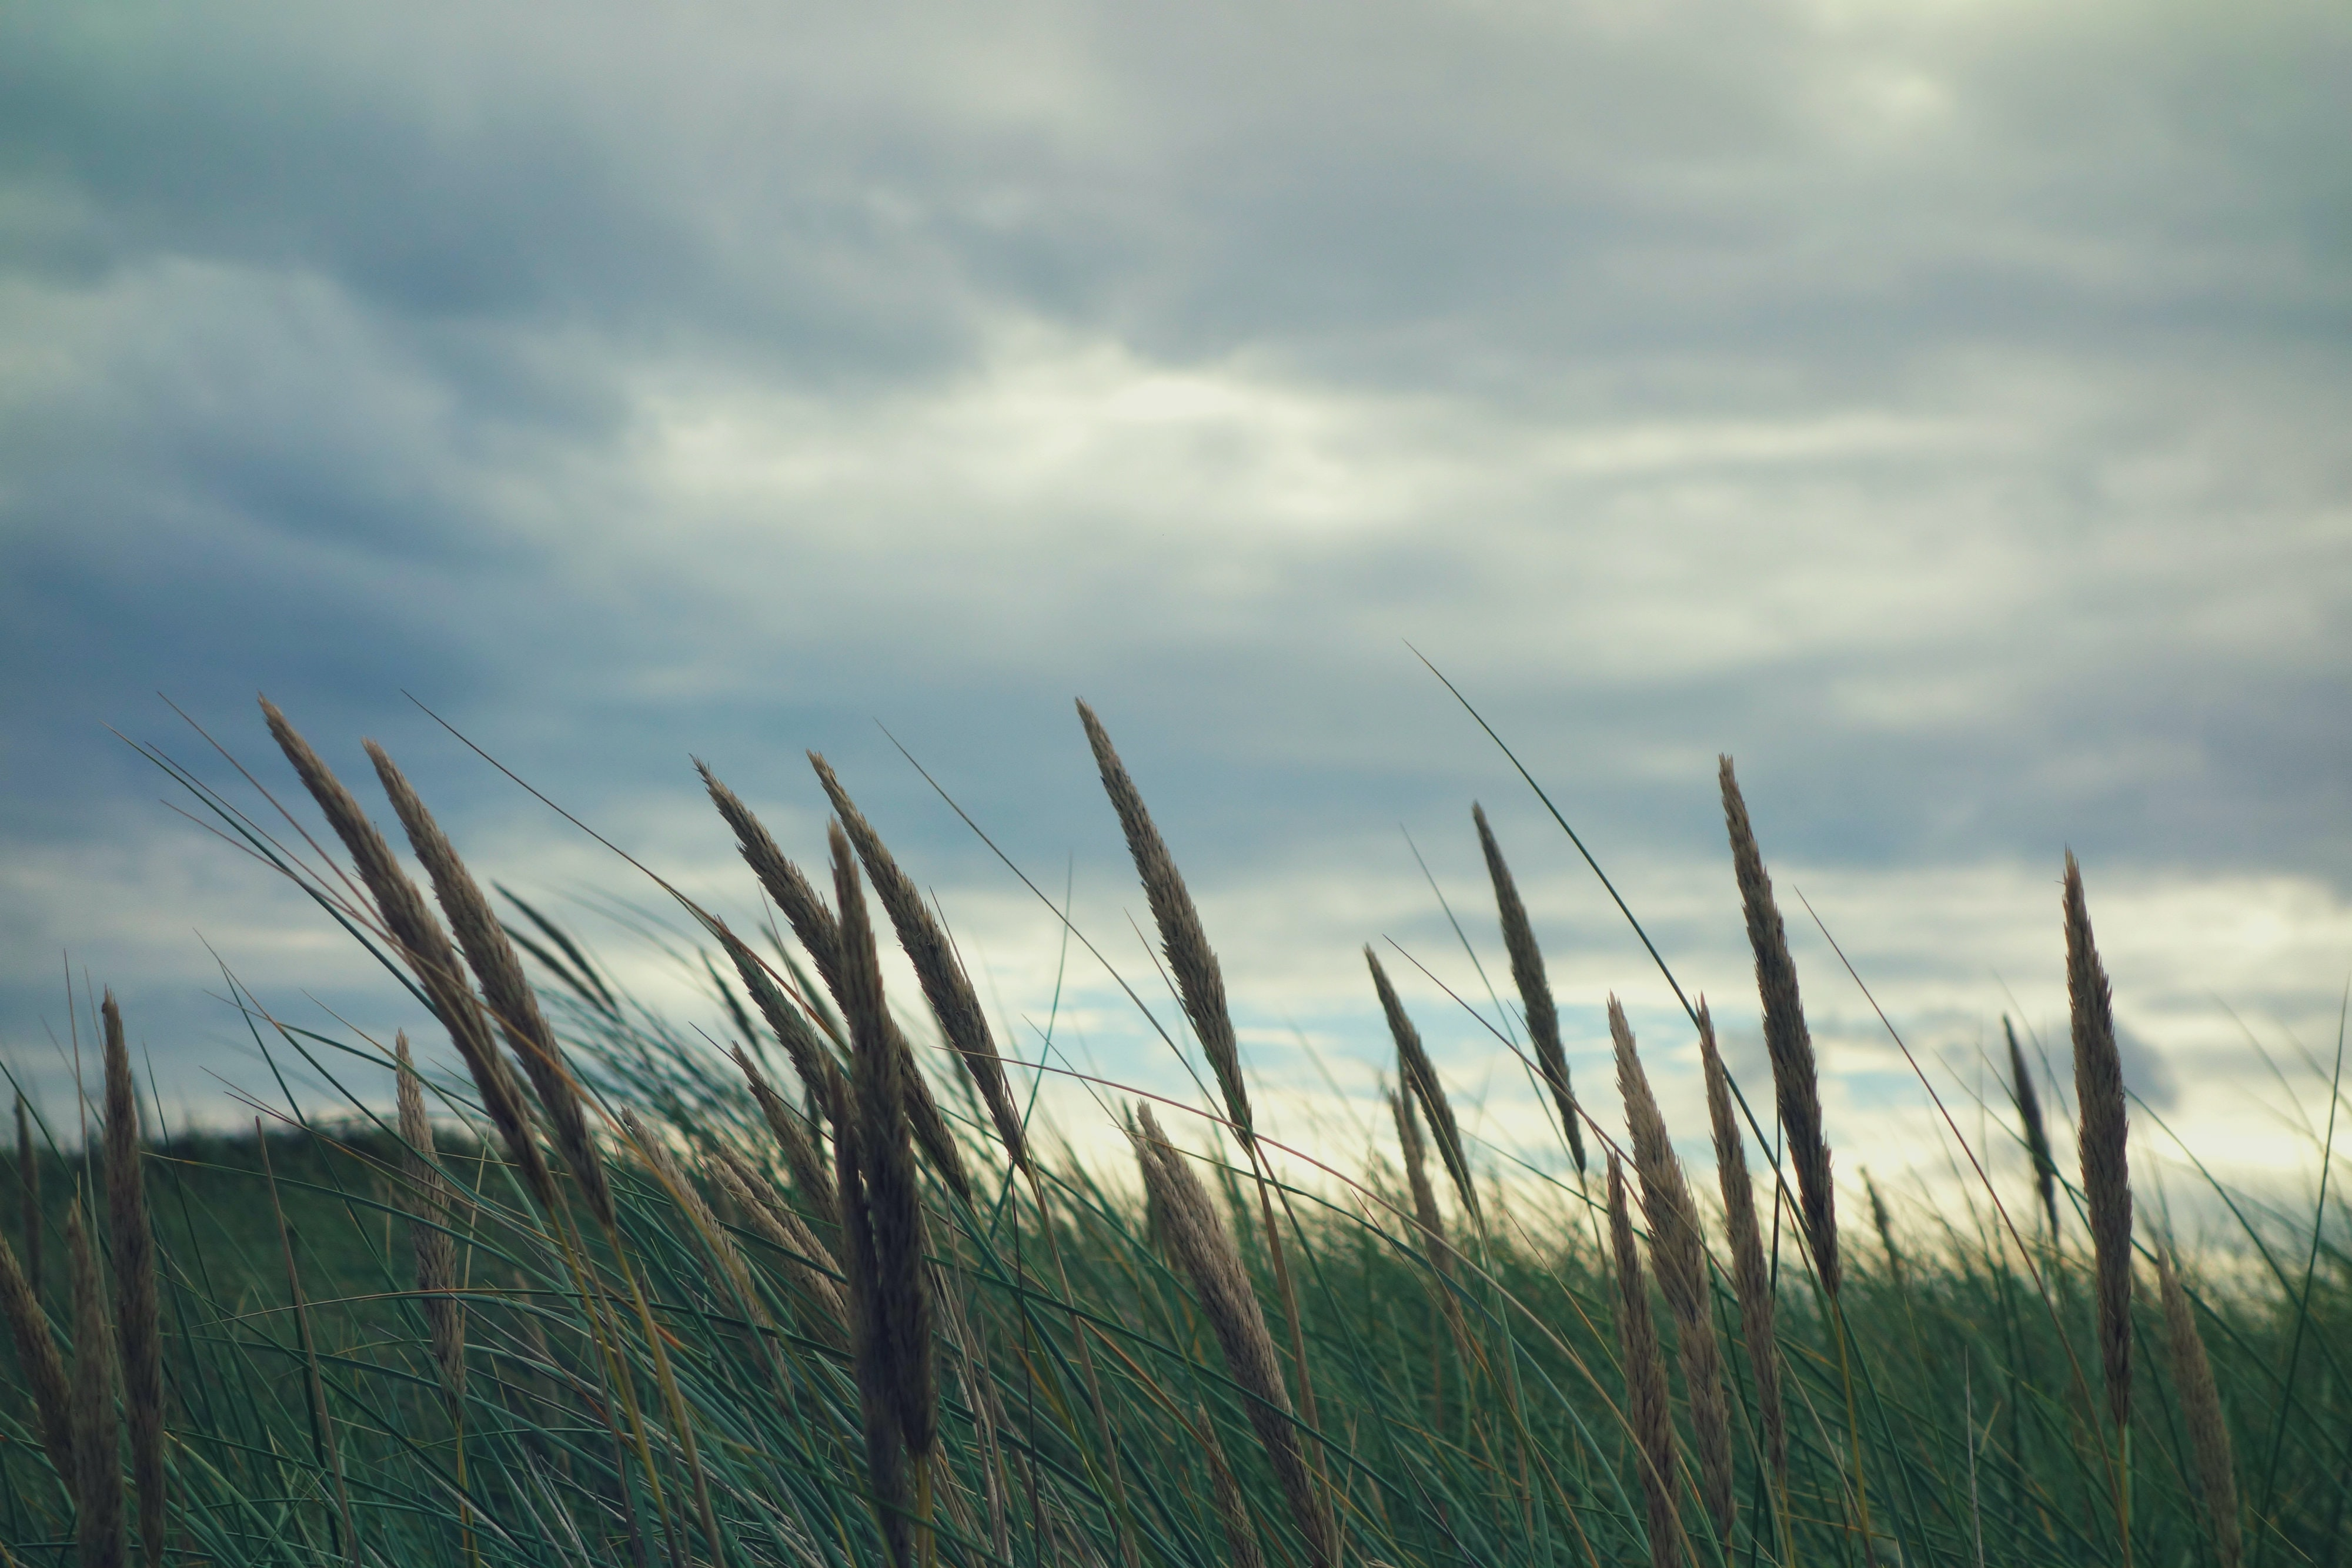 A field of grass on a cloudy day